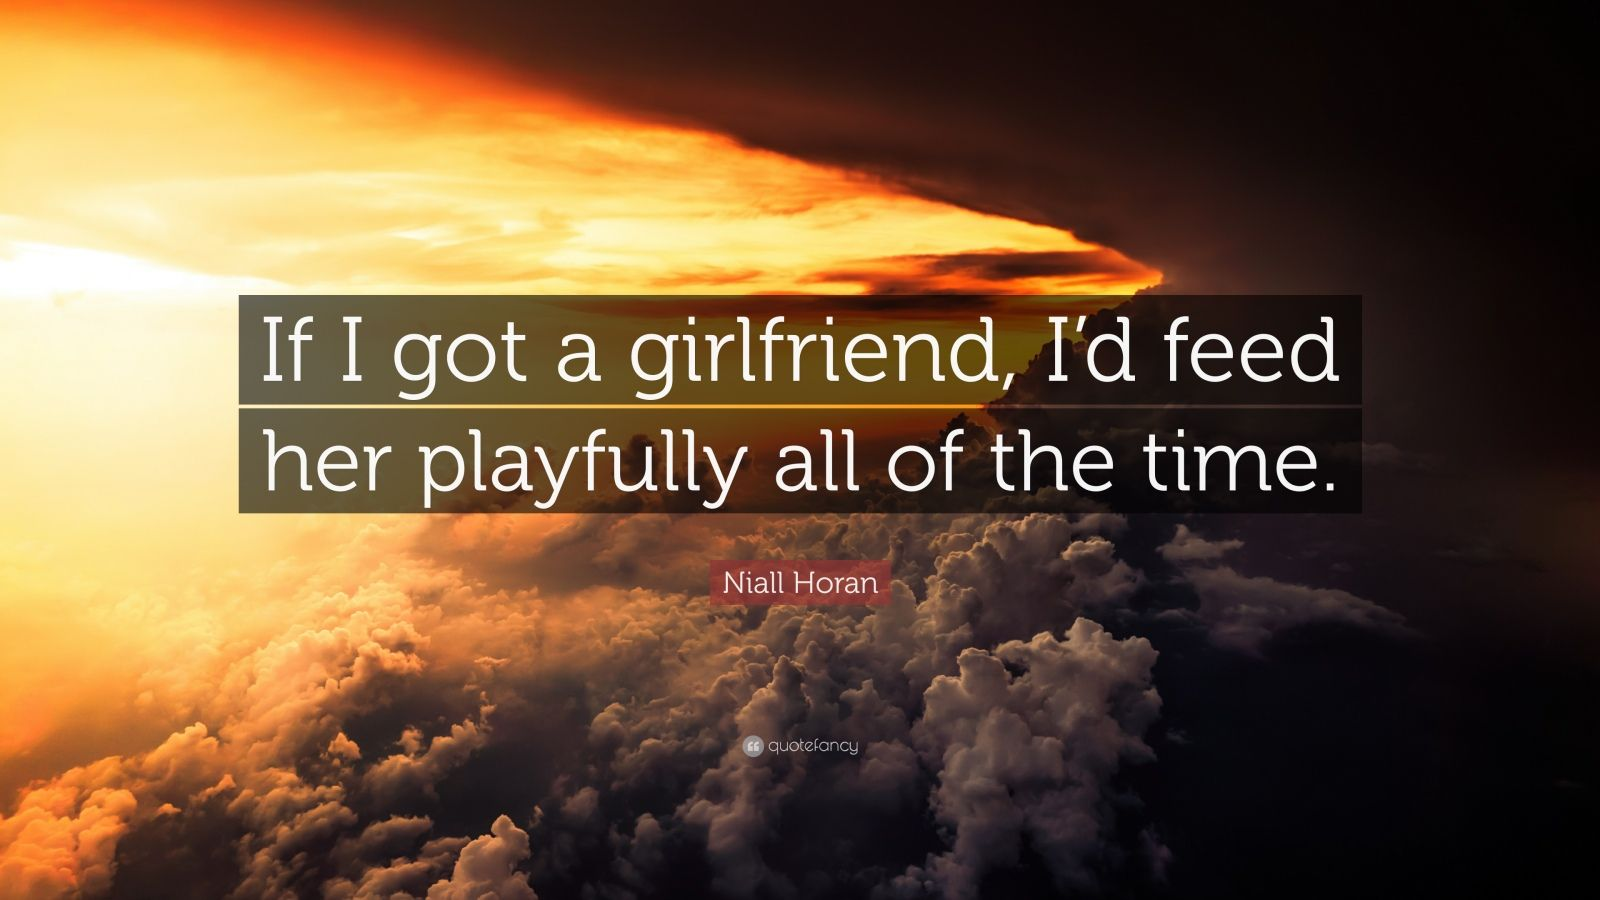 """Niall Horan Quote: """"If I got a girlfriend, I'd feed her playfully all of the time."""""""